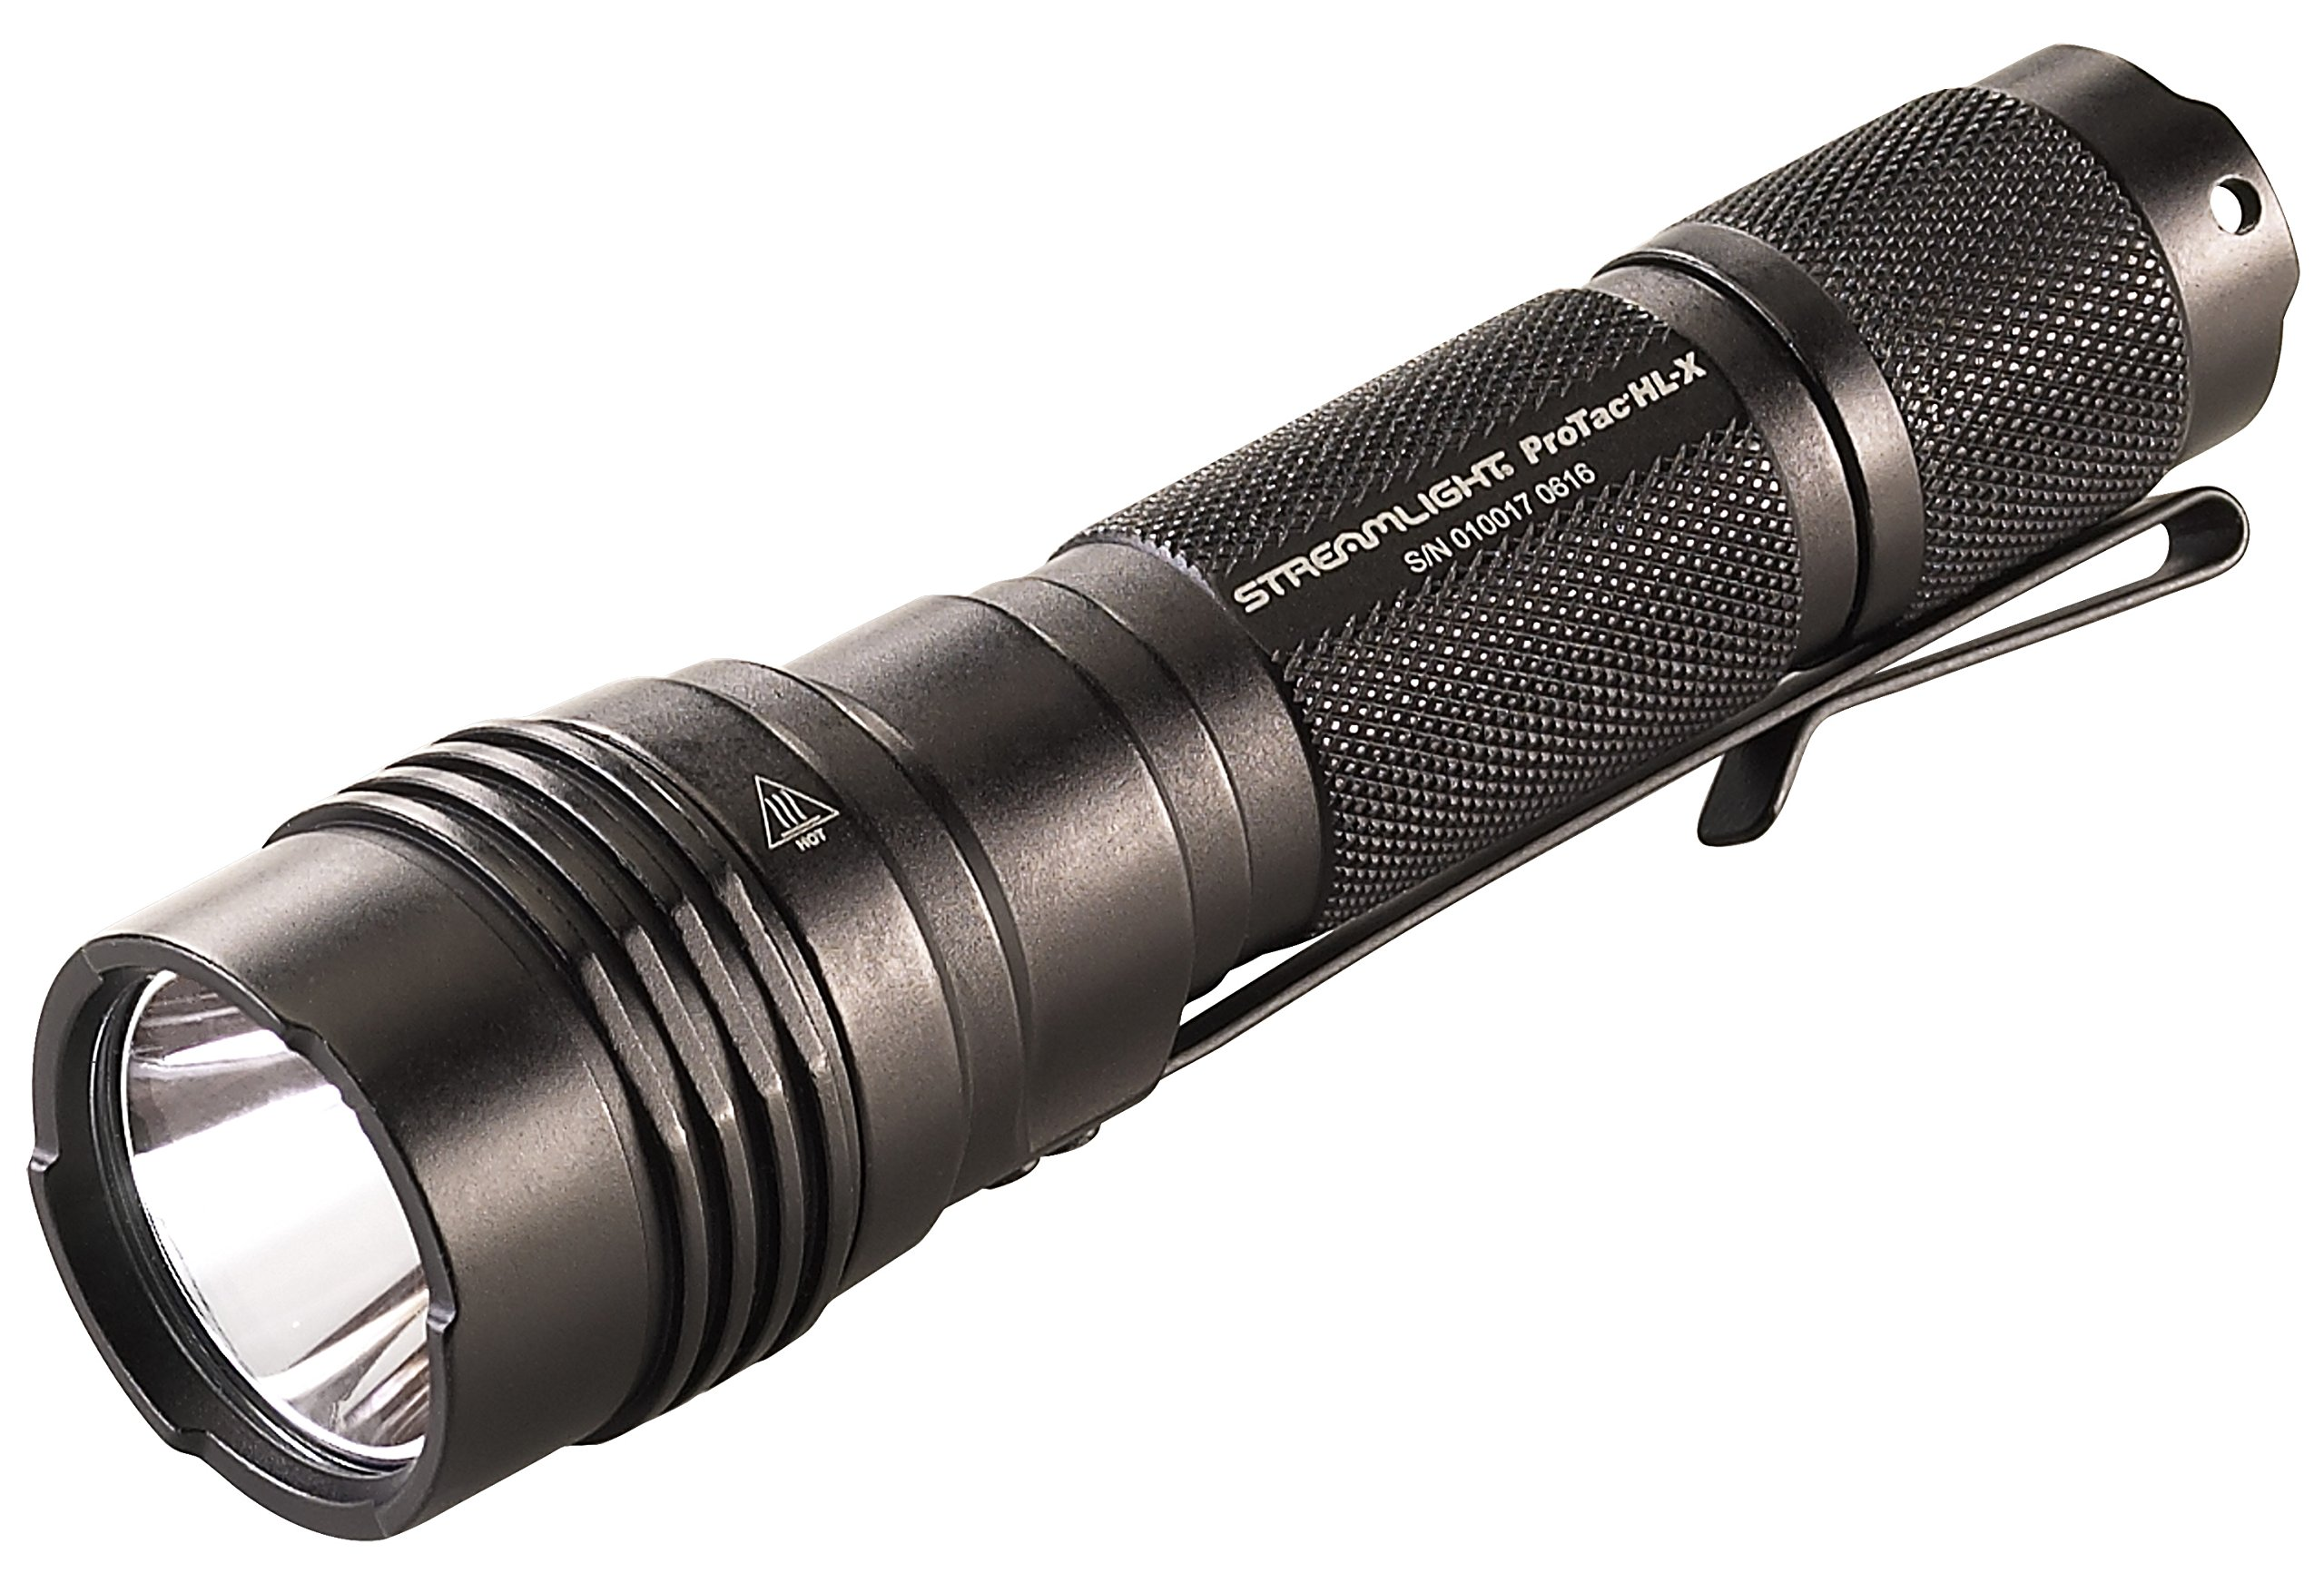 Streamlight 88065 Pro Tac HL-X 1,000 Lumen Professional Tactical Flashlight with High/Low/Strobe''Dual Fuel'' use 2x CR123A or 1 x 18650 Rechargeable Li-ion Batteries and Holster - 1000 Lumens